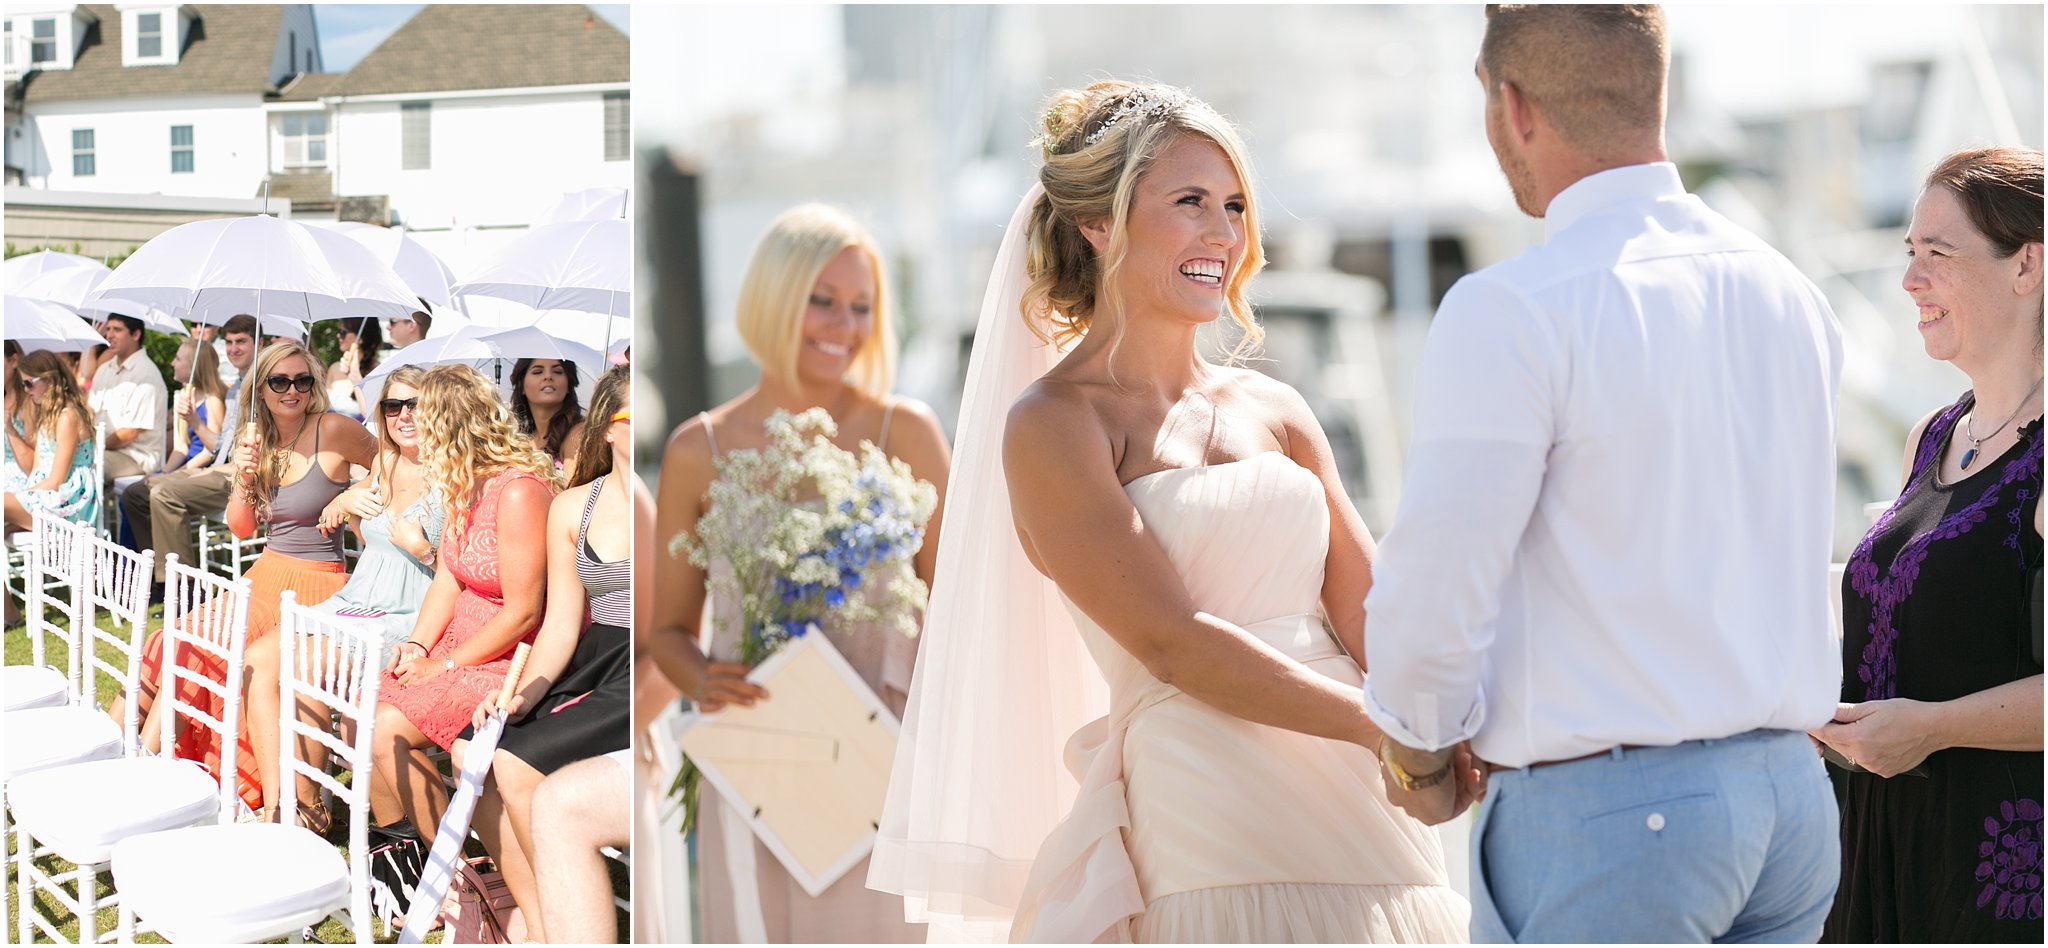 jessica_ryan_photography_wedding_hampton_roads_virginia_virginia_beach_weddings_0609